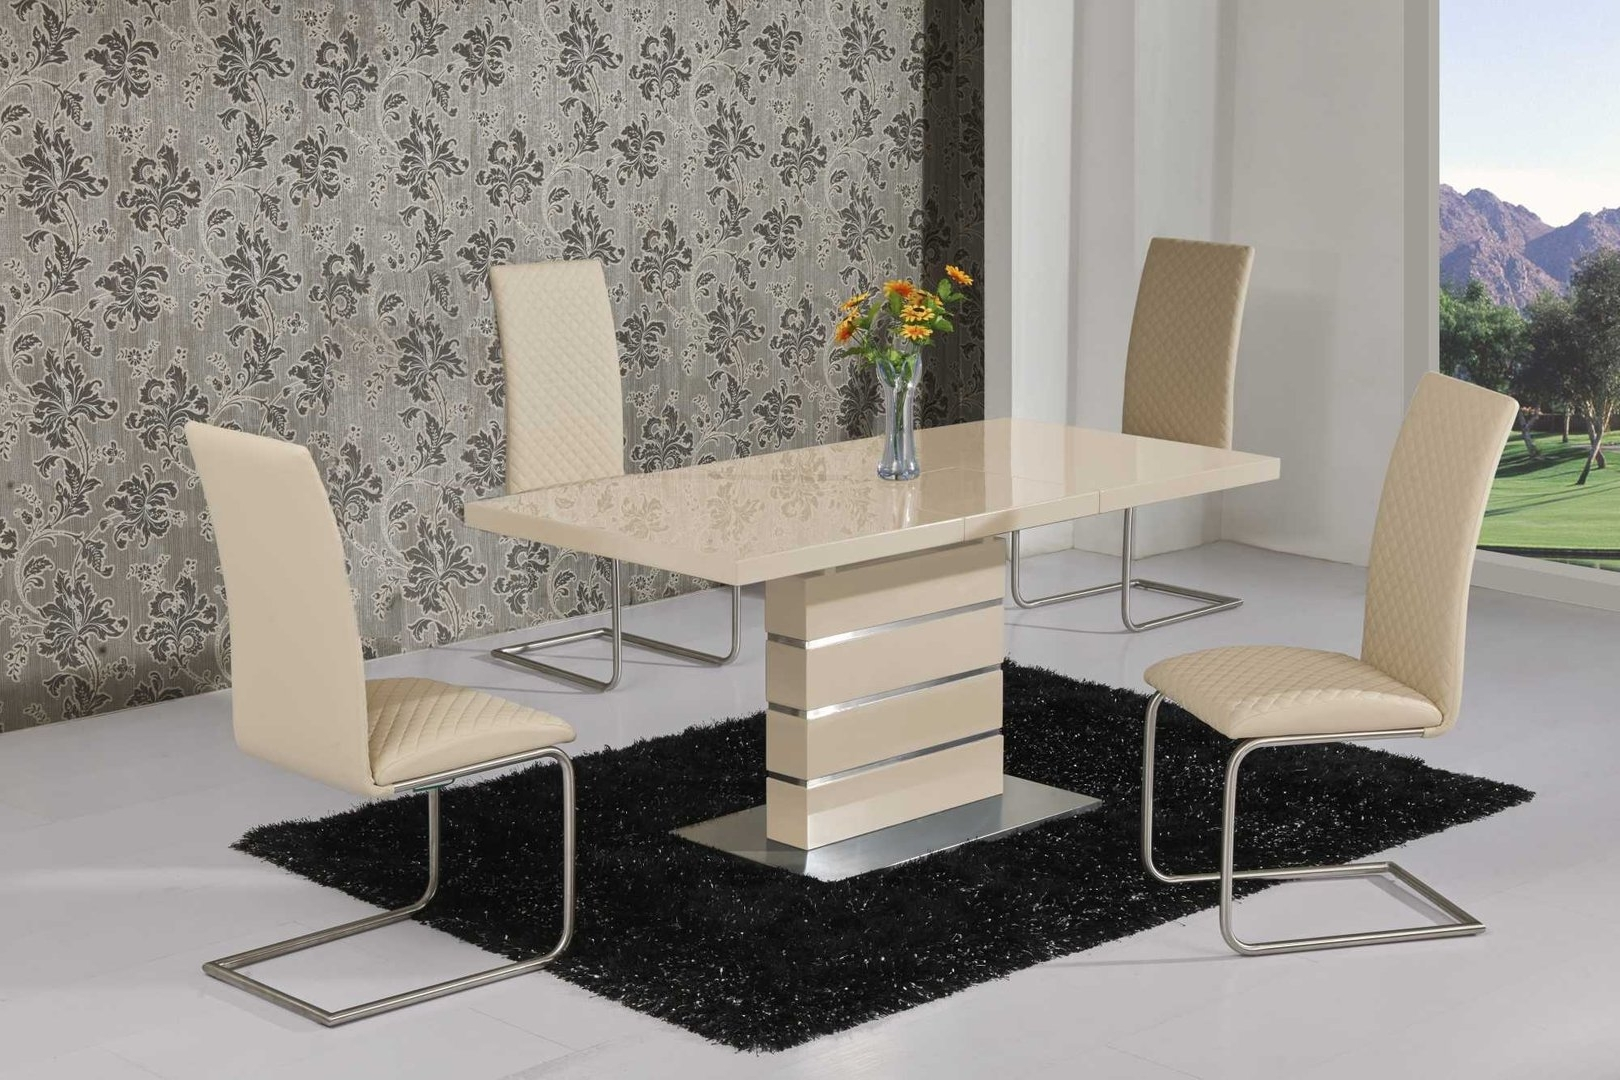 Gloss Dining Table Sets – Castrophotos Throughout Most Up To Date Glass And White Gloss Dining Tables (Gallery 19 of 25)